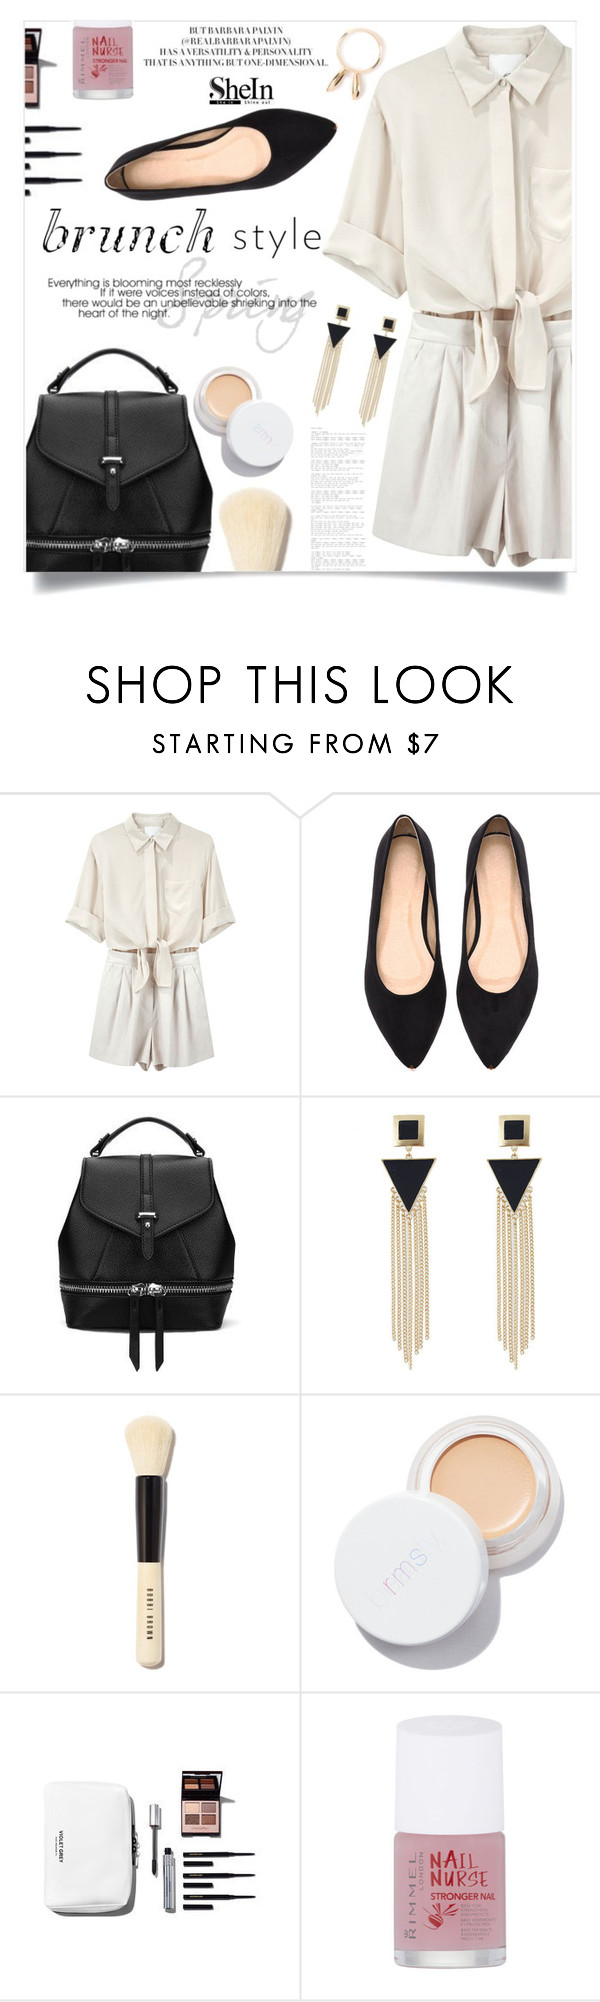 """""""Here Comes the Spring"""" by violet-peach ❤ liked on Polyvore featuring 3.1 Phillip Lim, Bobbi Brown Cosmetics, rms beauty, Rimmel and Natasha Zinko"""